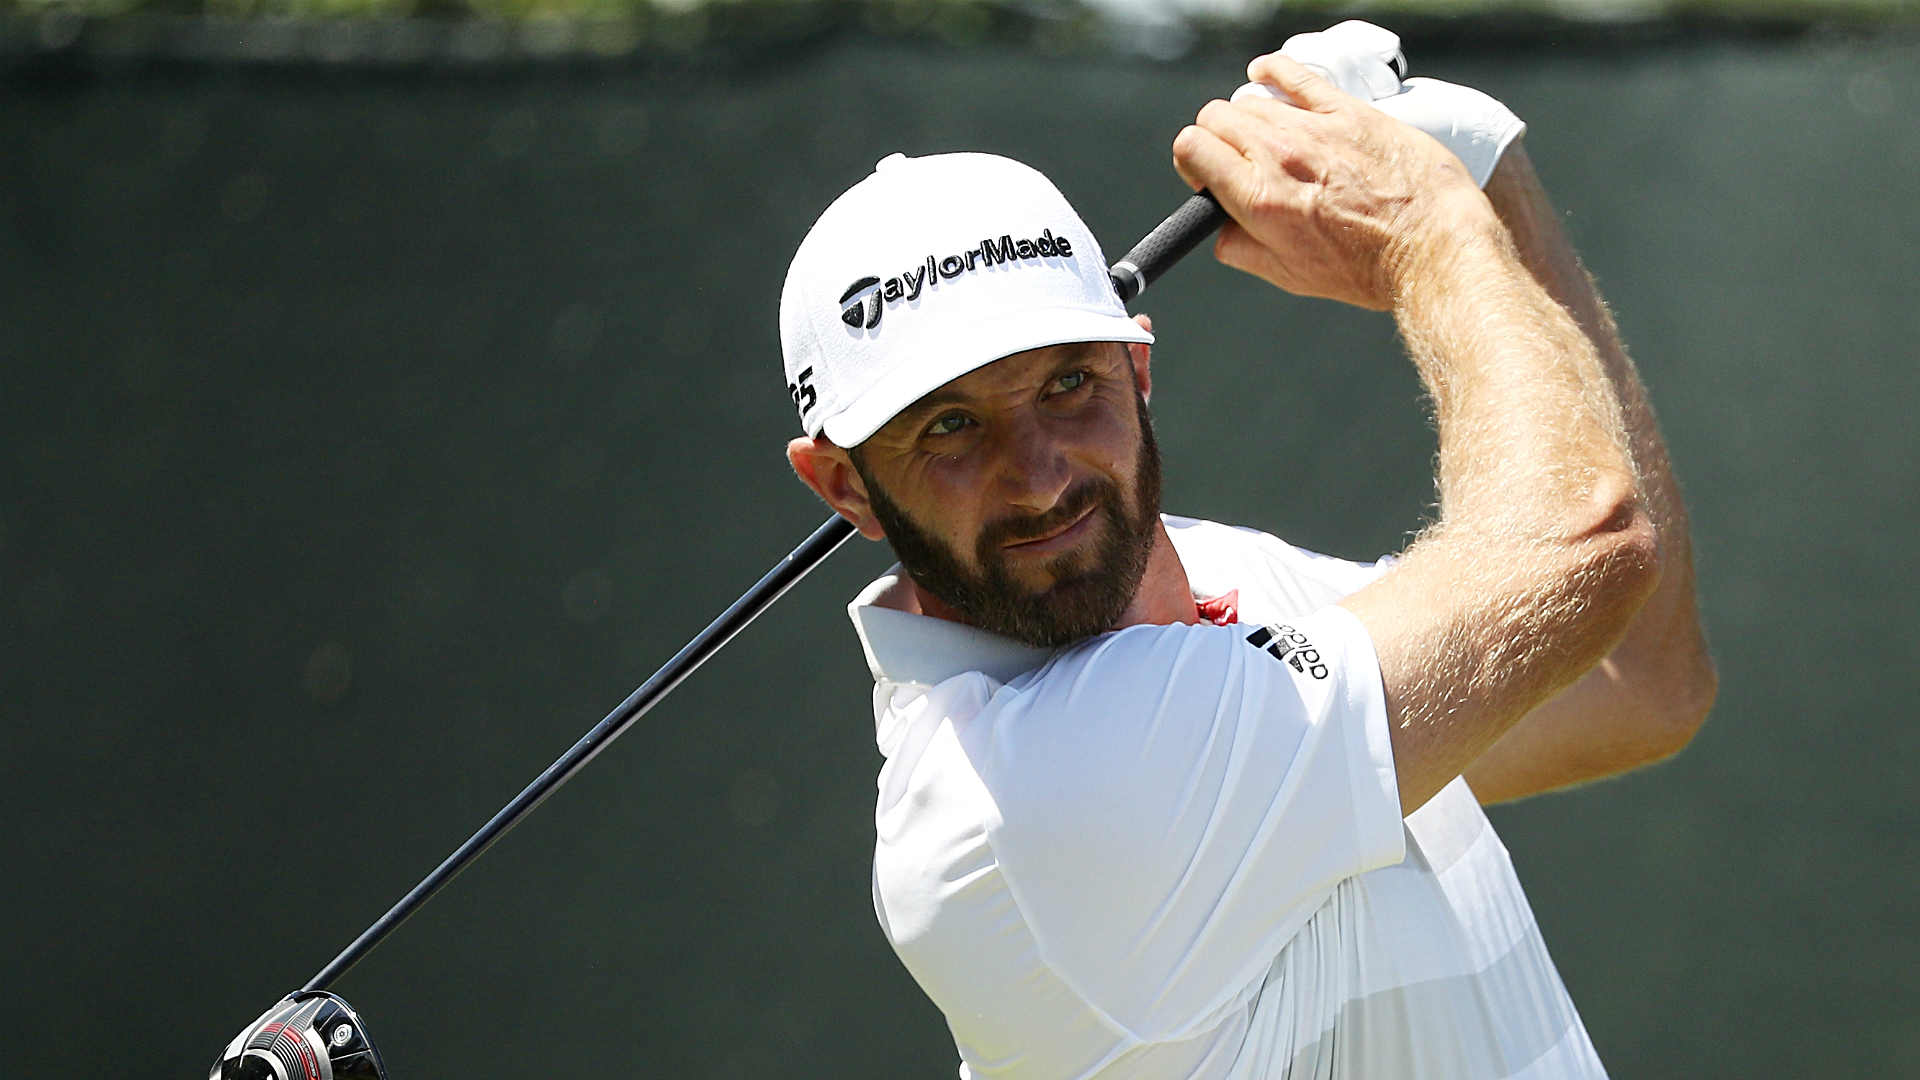 Dustin Johnson has history on his side at the US Open